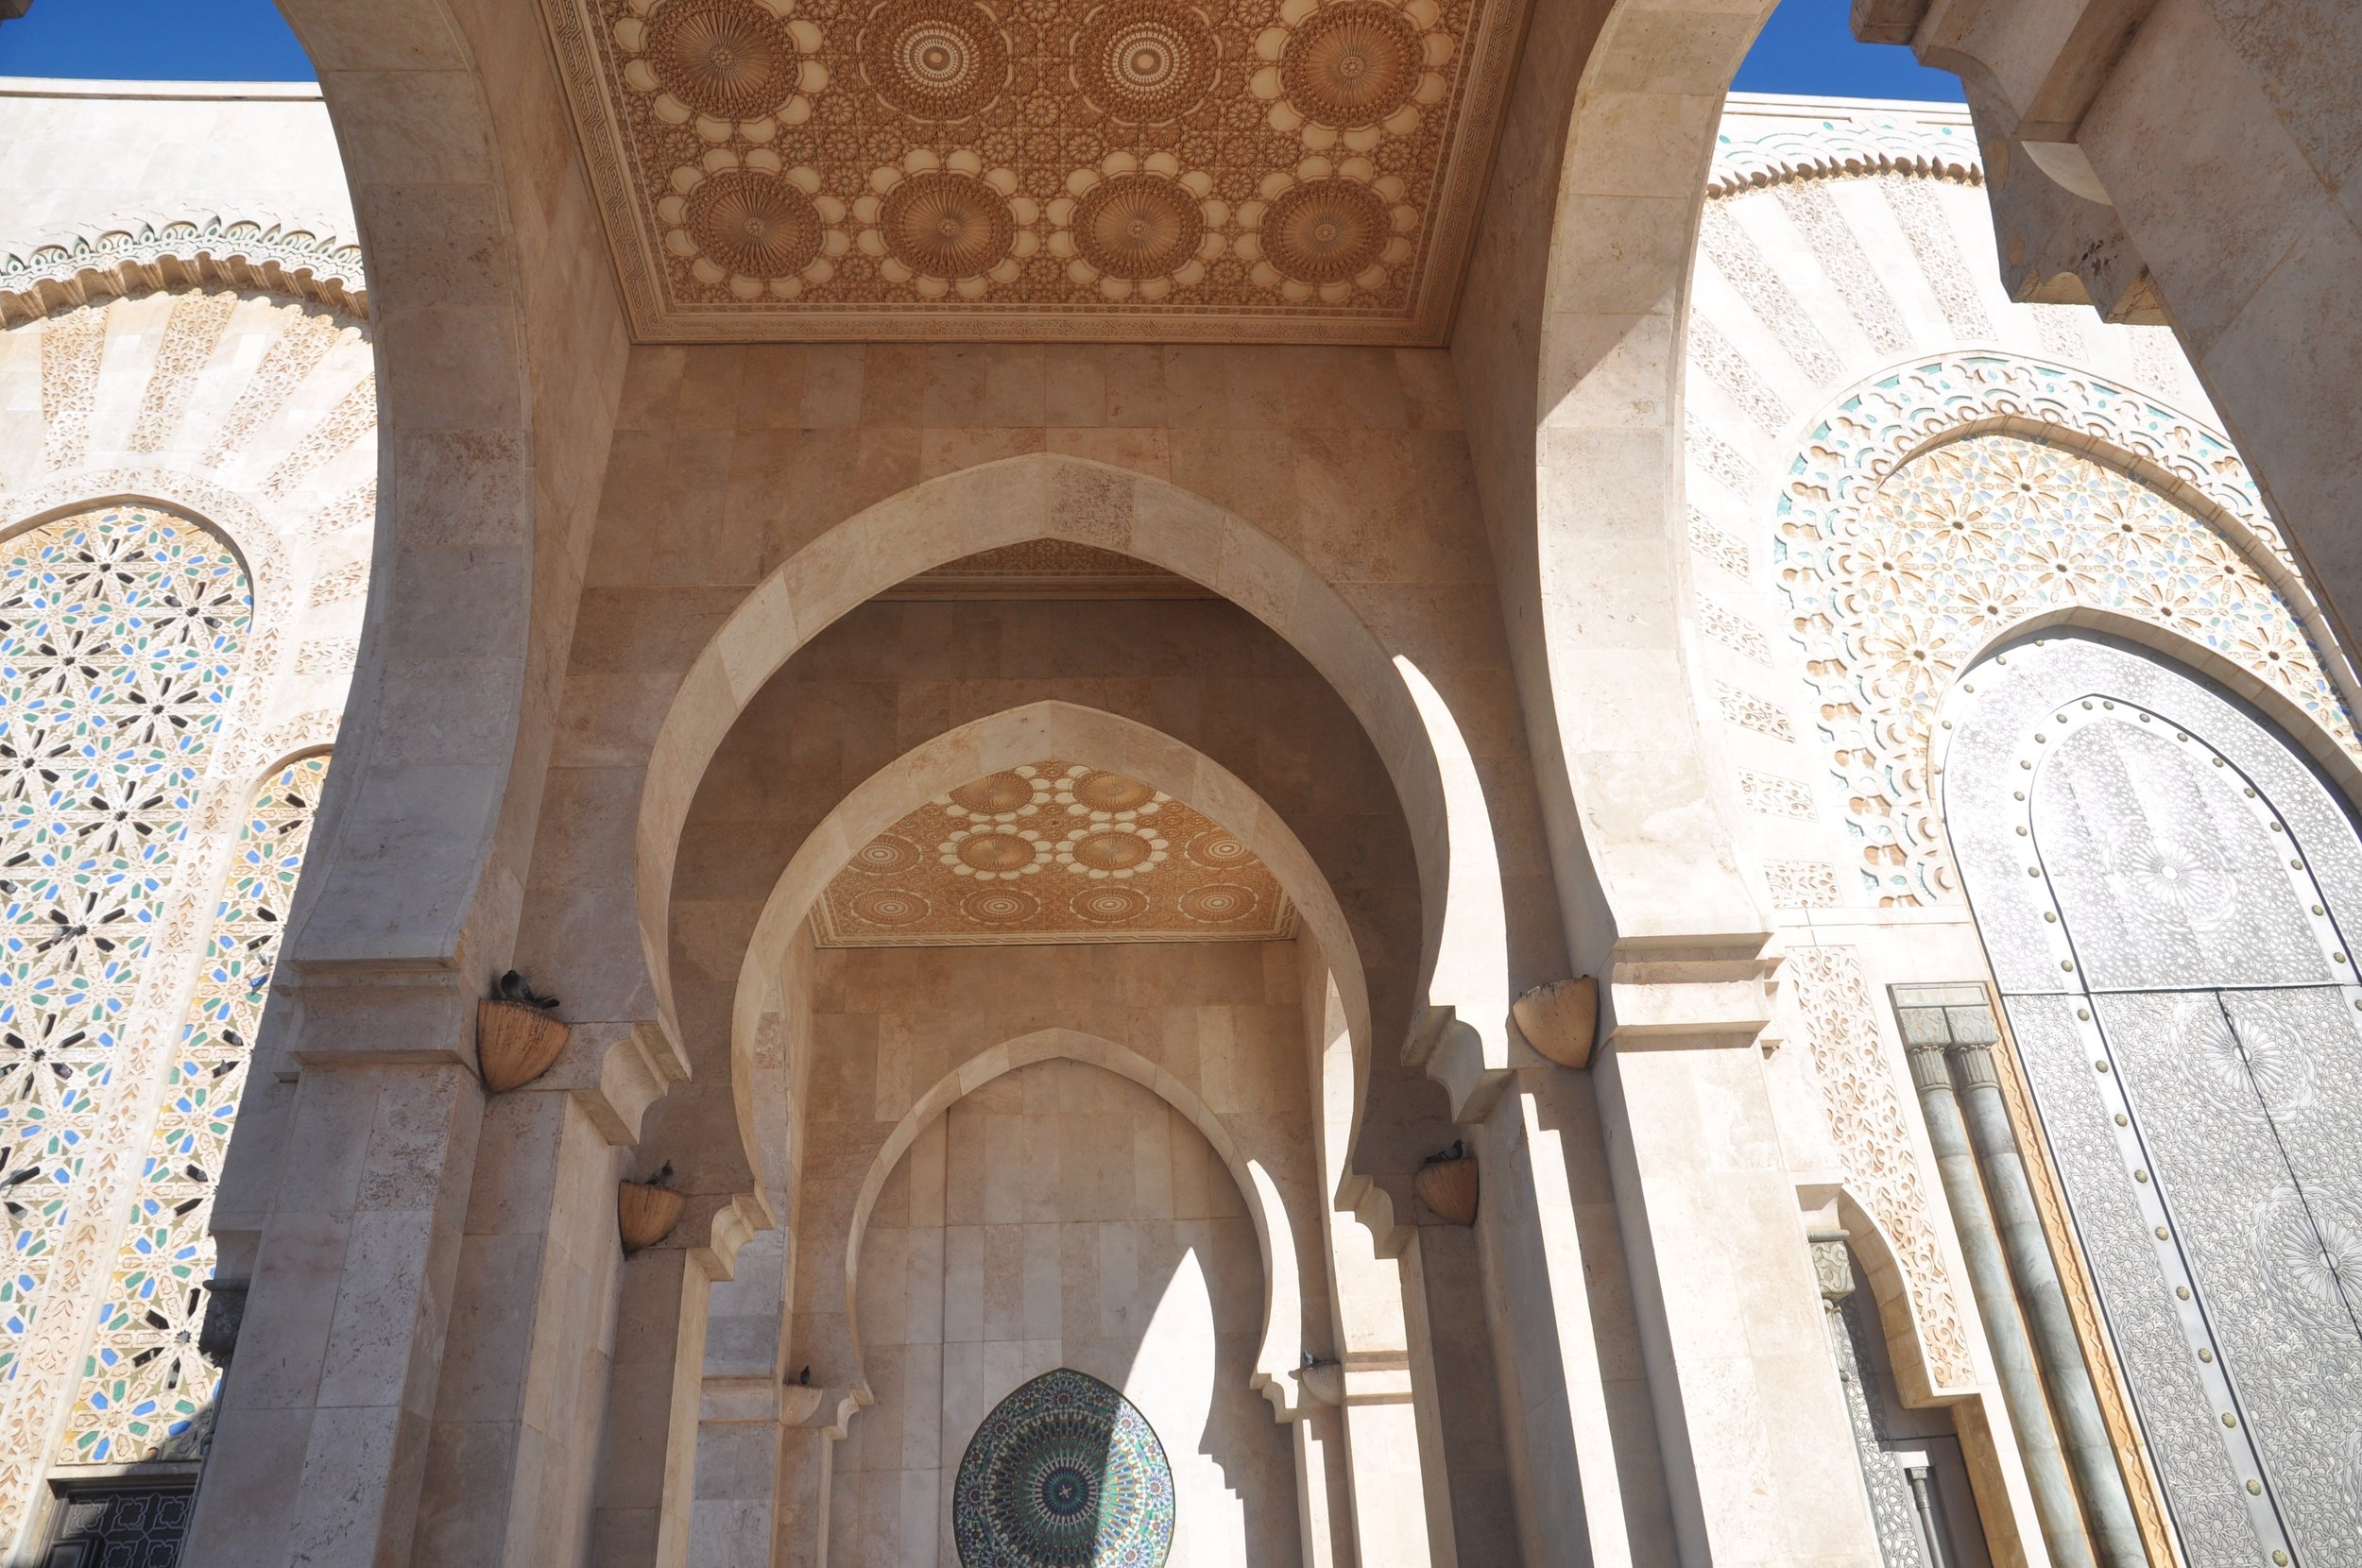 Some of the intricate details of Hassan II, completed in 1993 and costing up to $700 million.